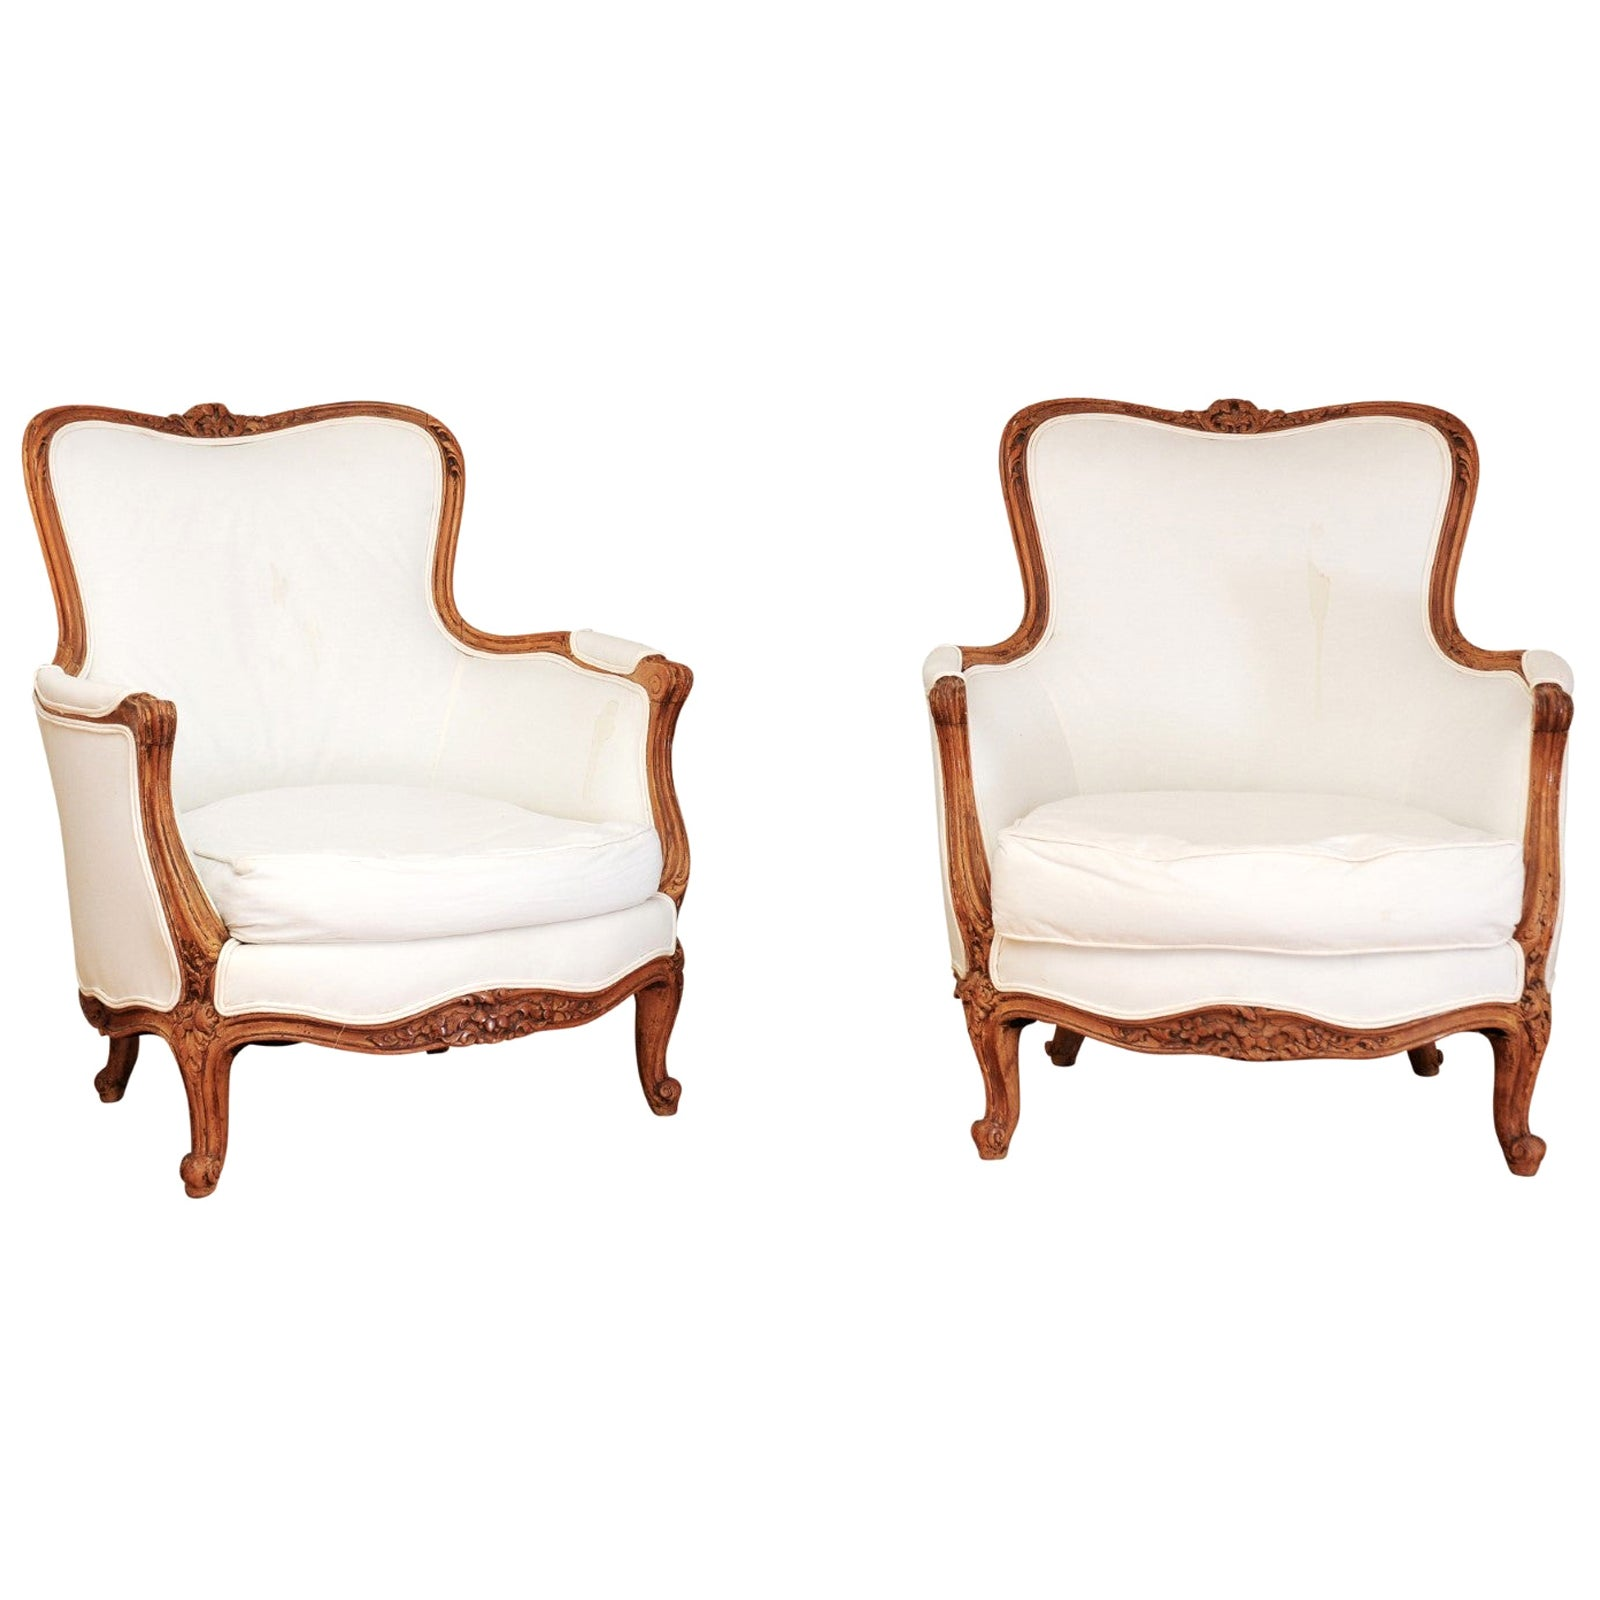 Small Pair of French 19th Century Louis XV Style Walnut Bergères with Upholstery